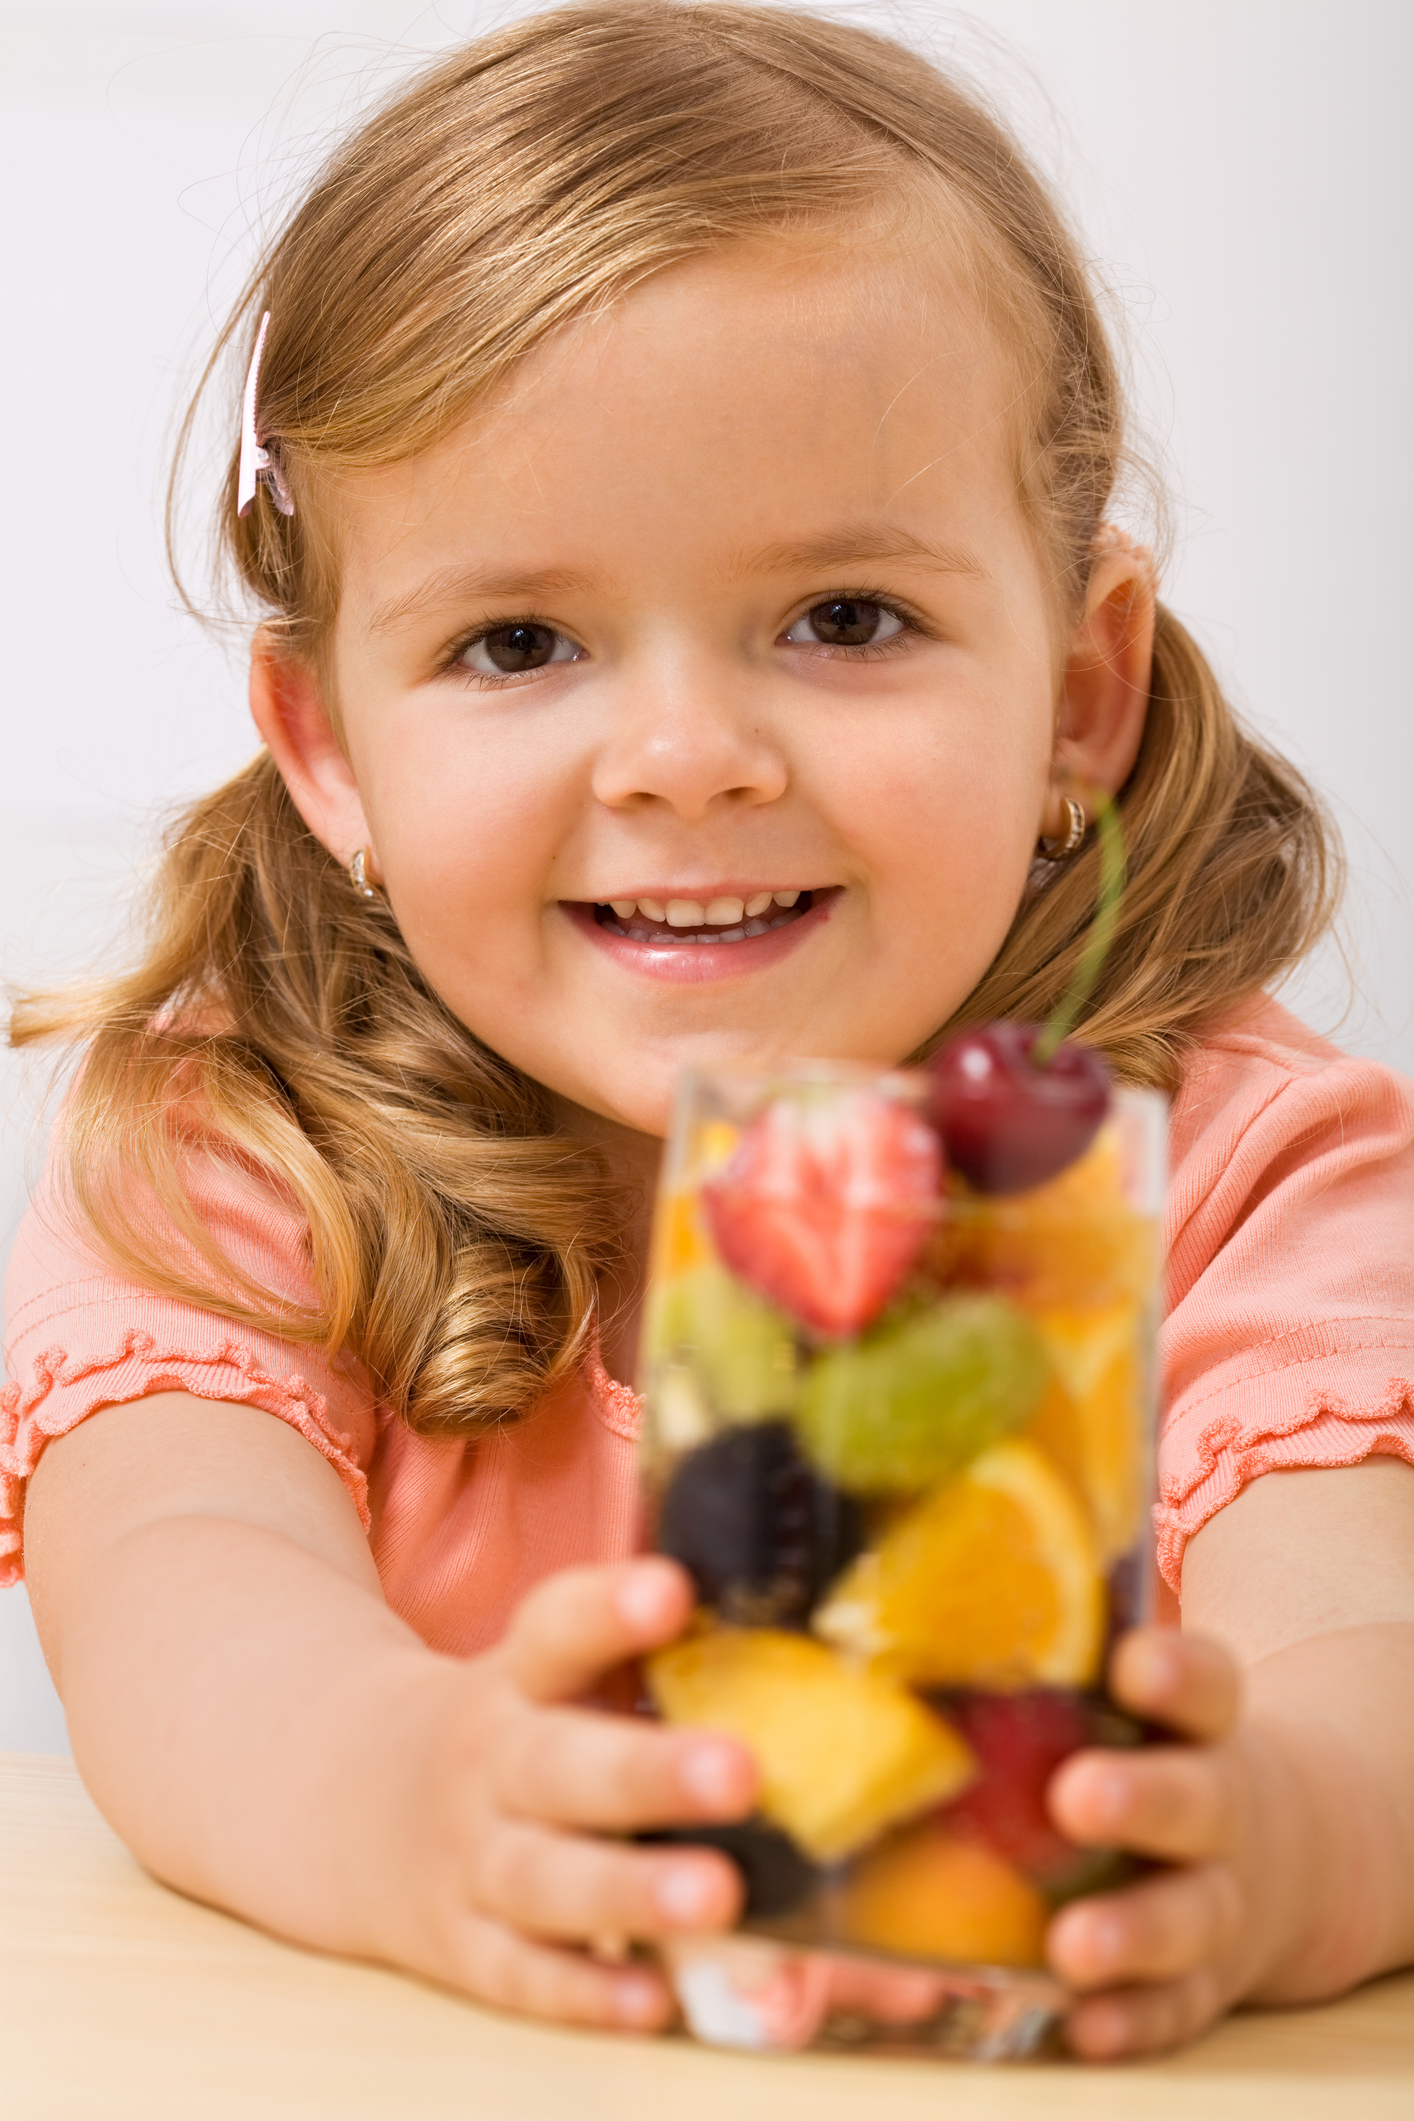 Choosing Healthy Drinks for Your Kids